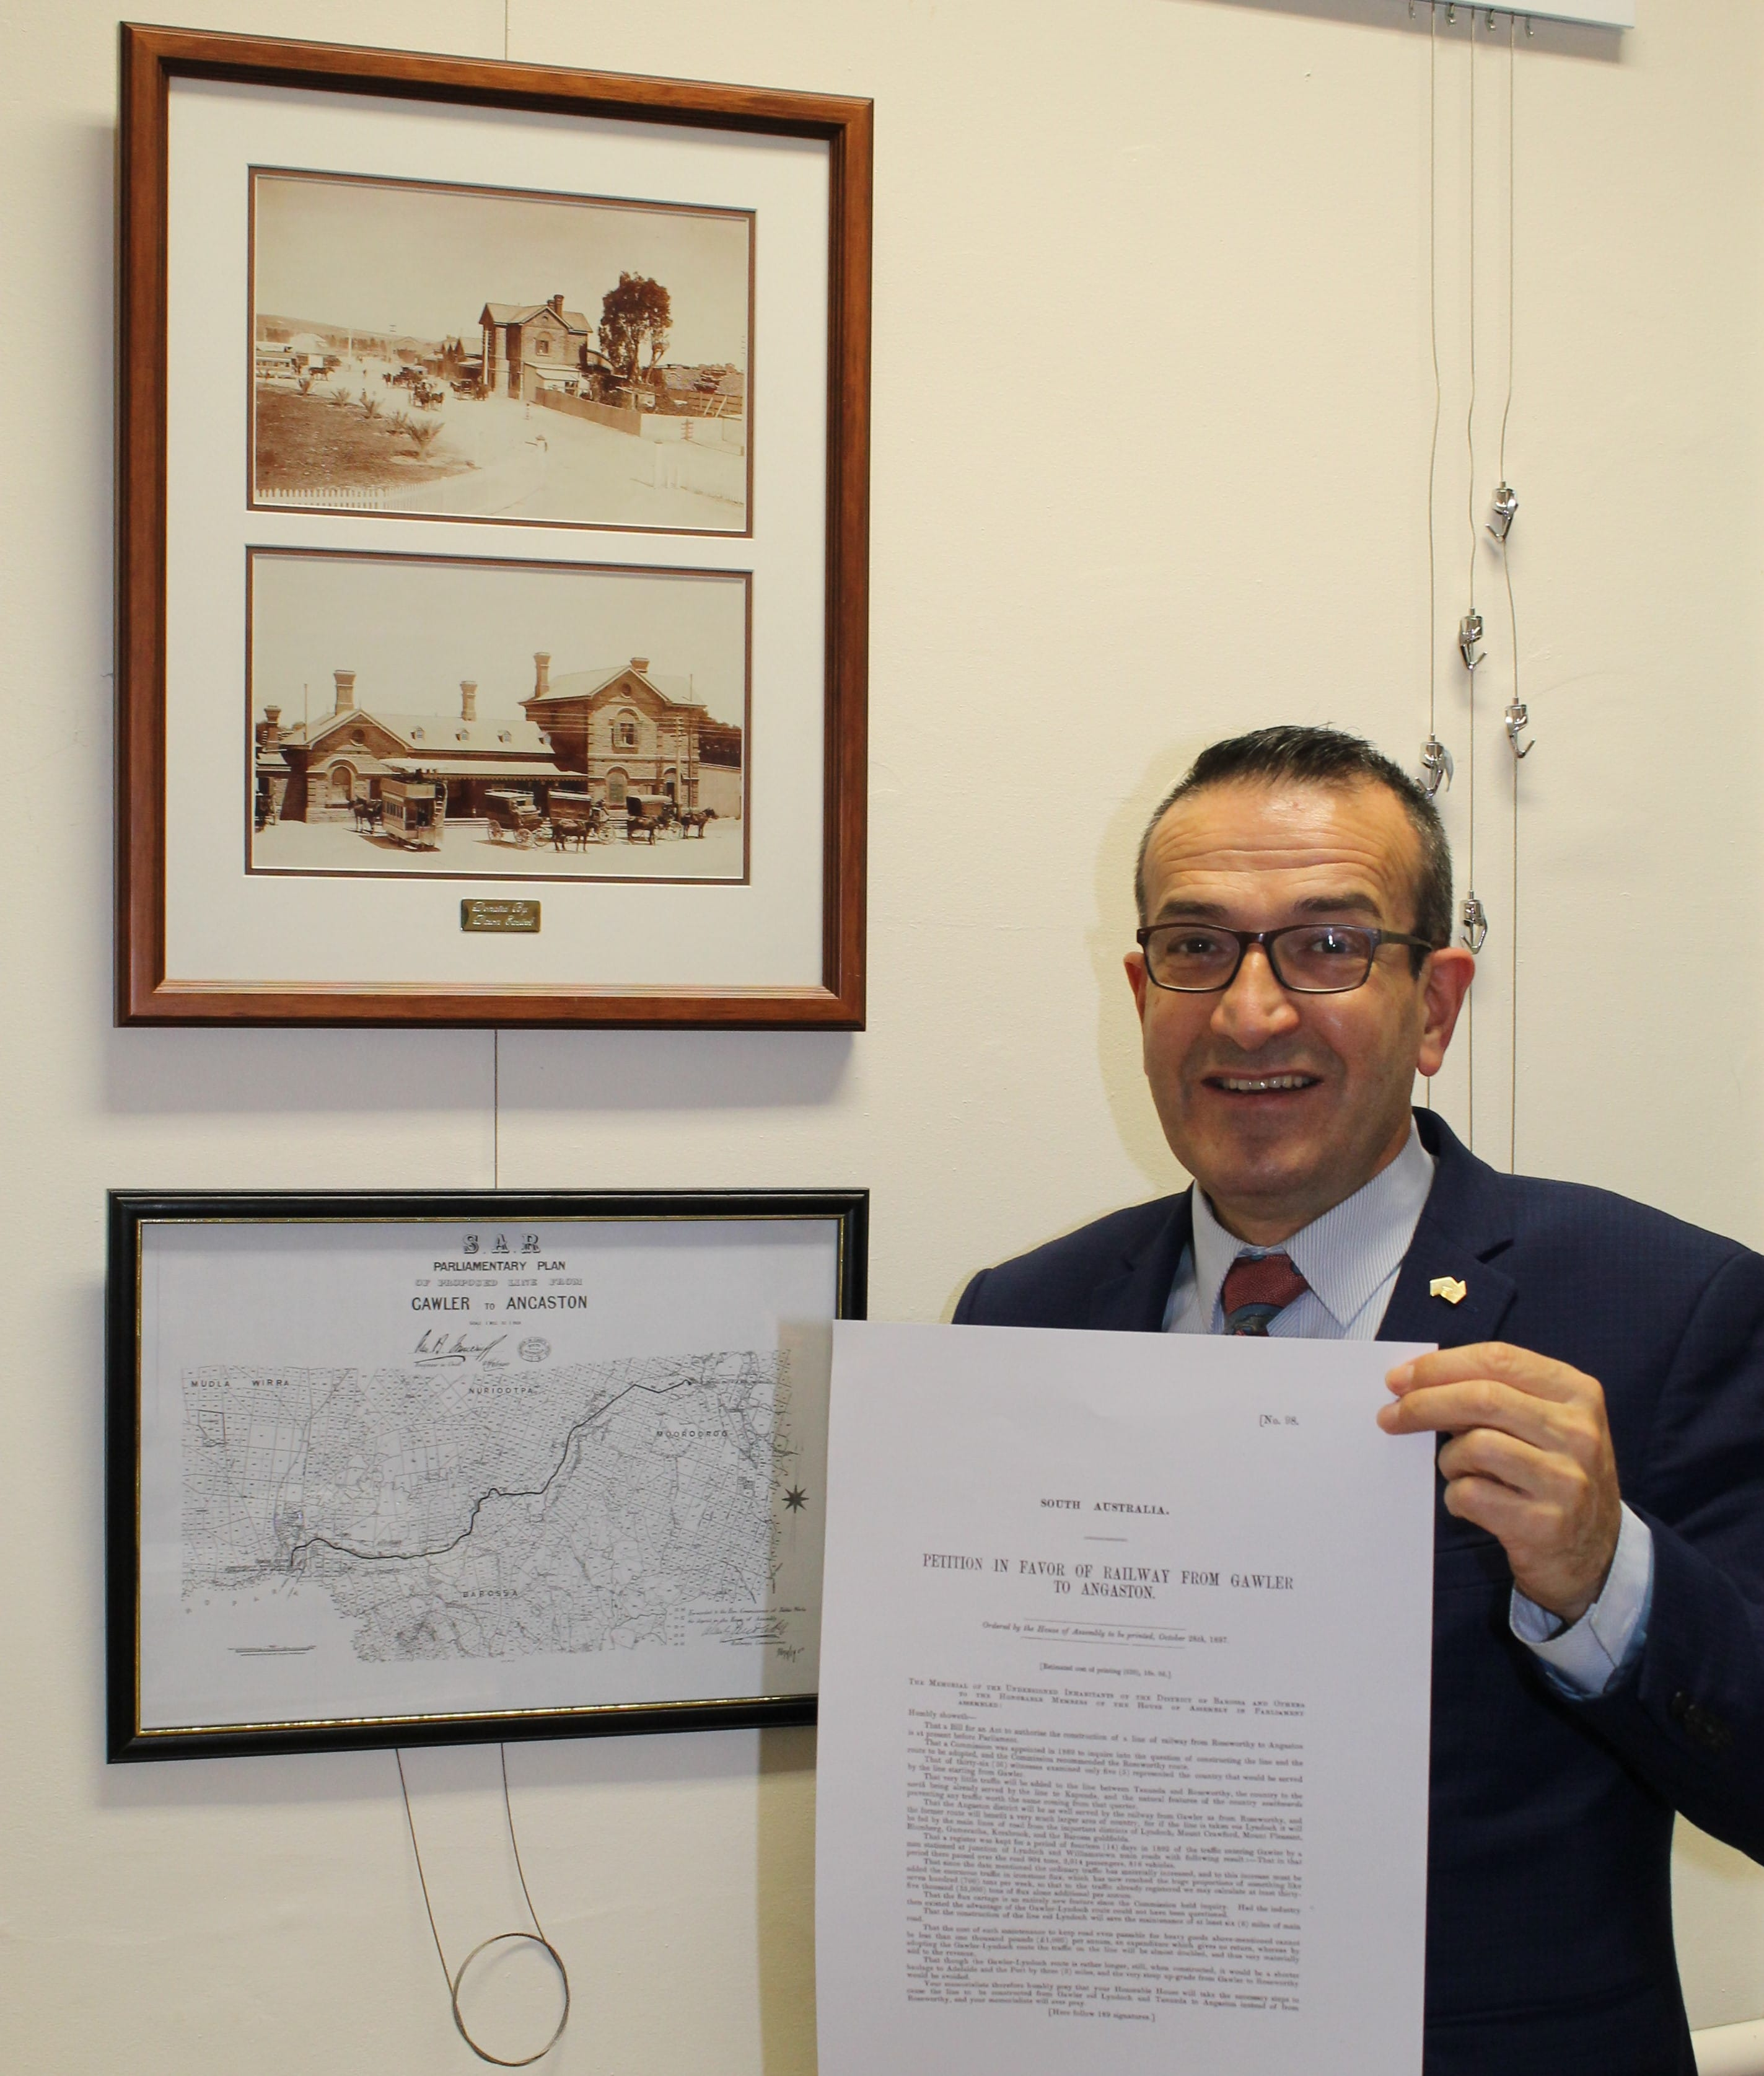 Tony Piccolo MP with some of the items in the exhibition, including a copy of one of the petitions tabled in State Parliament on 28th October 1897.